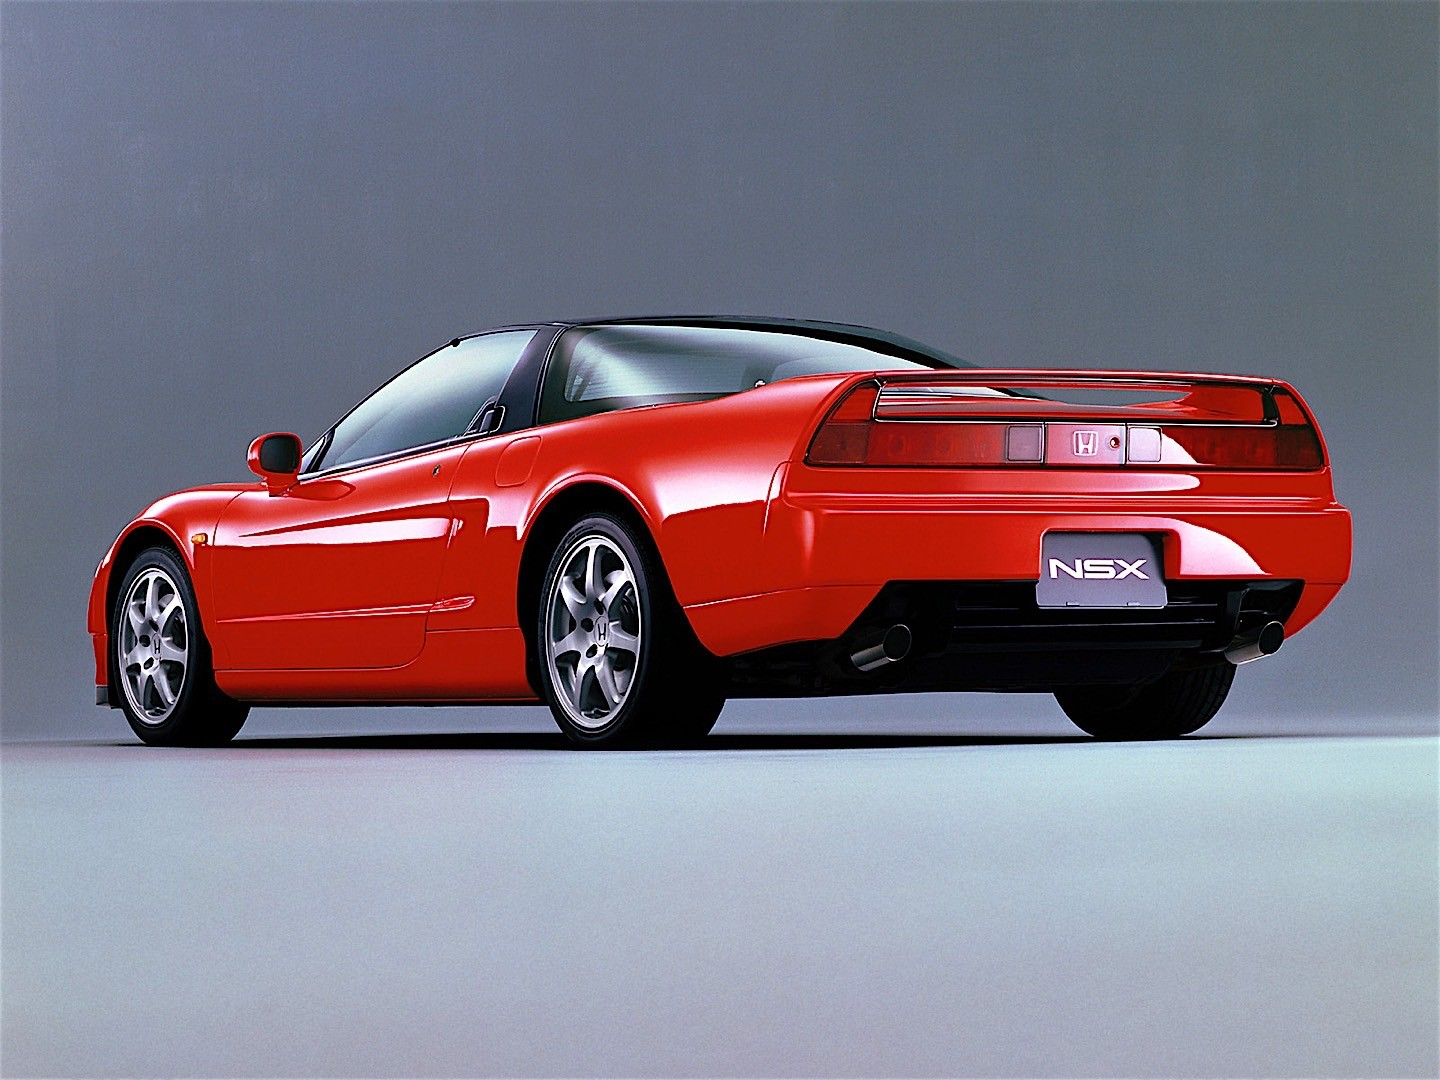 honda nsx specs 1991 1992 1993 1994 1995 1996 1997 autoevolution. Black Bedroom Furniture Sets. Home Design Ideas